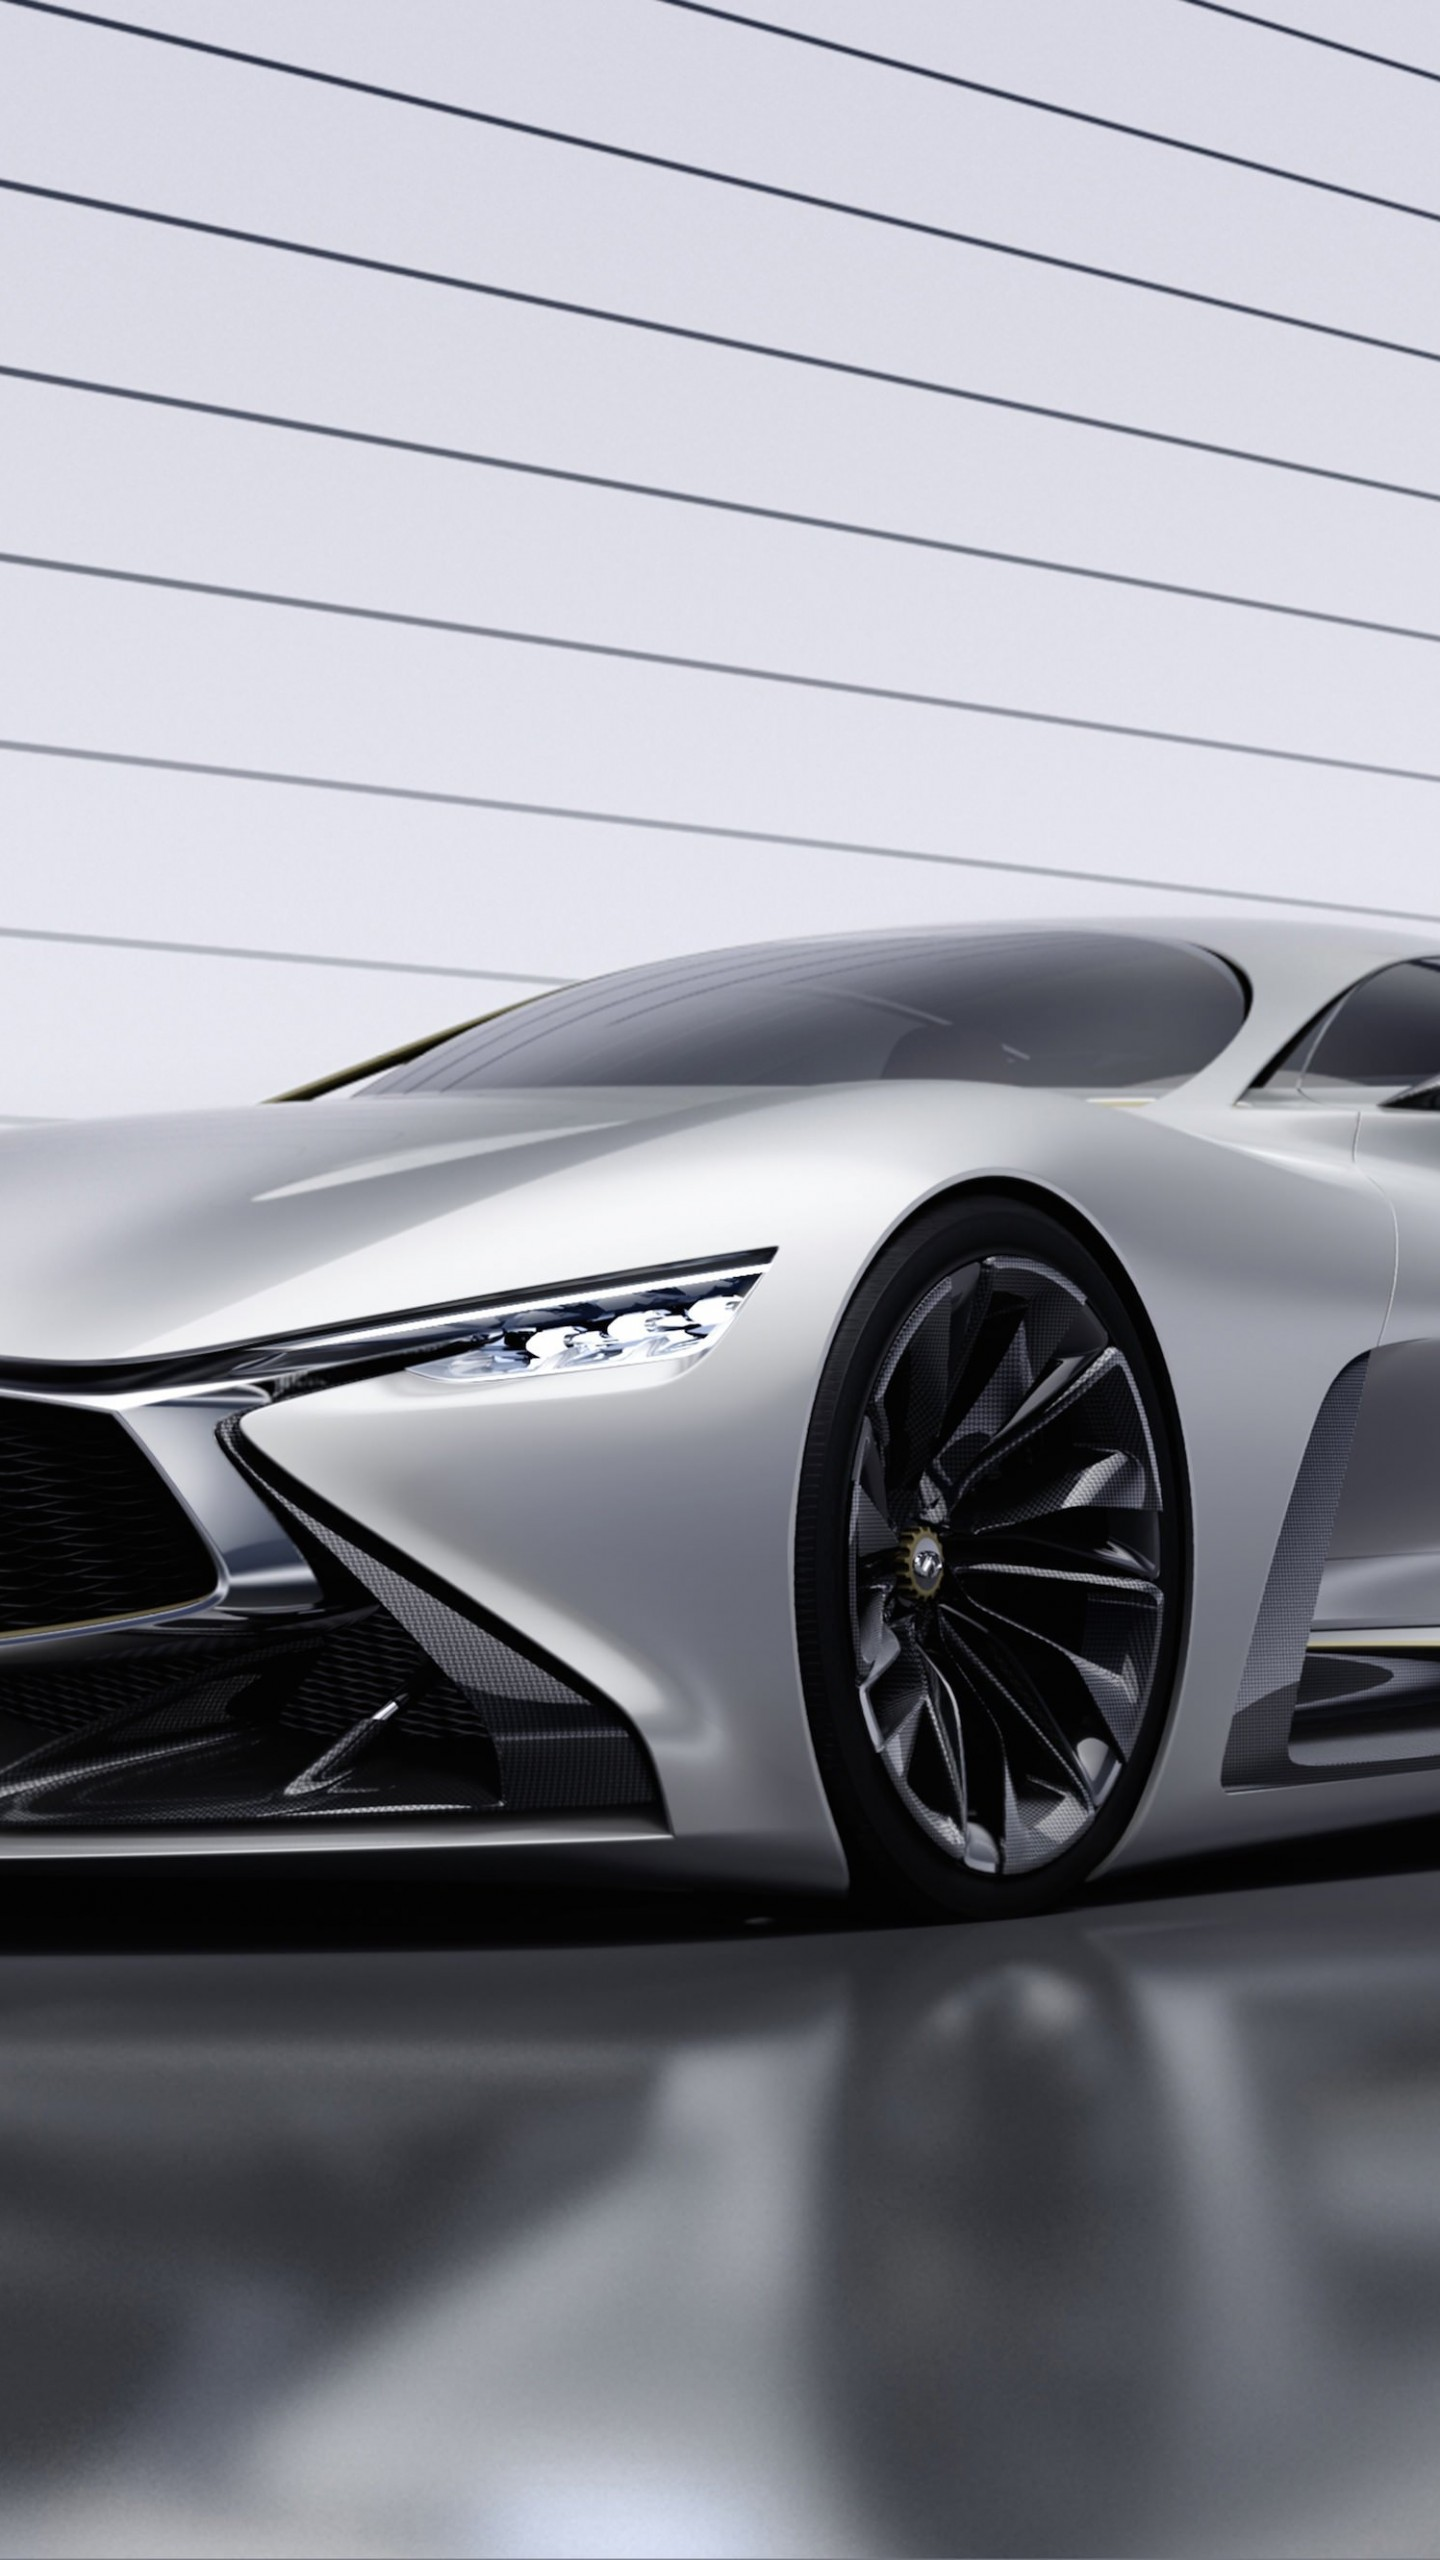 Infiniti Vision GT Concept Wallpaper for SAMSUNG Galaxy S6